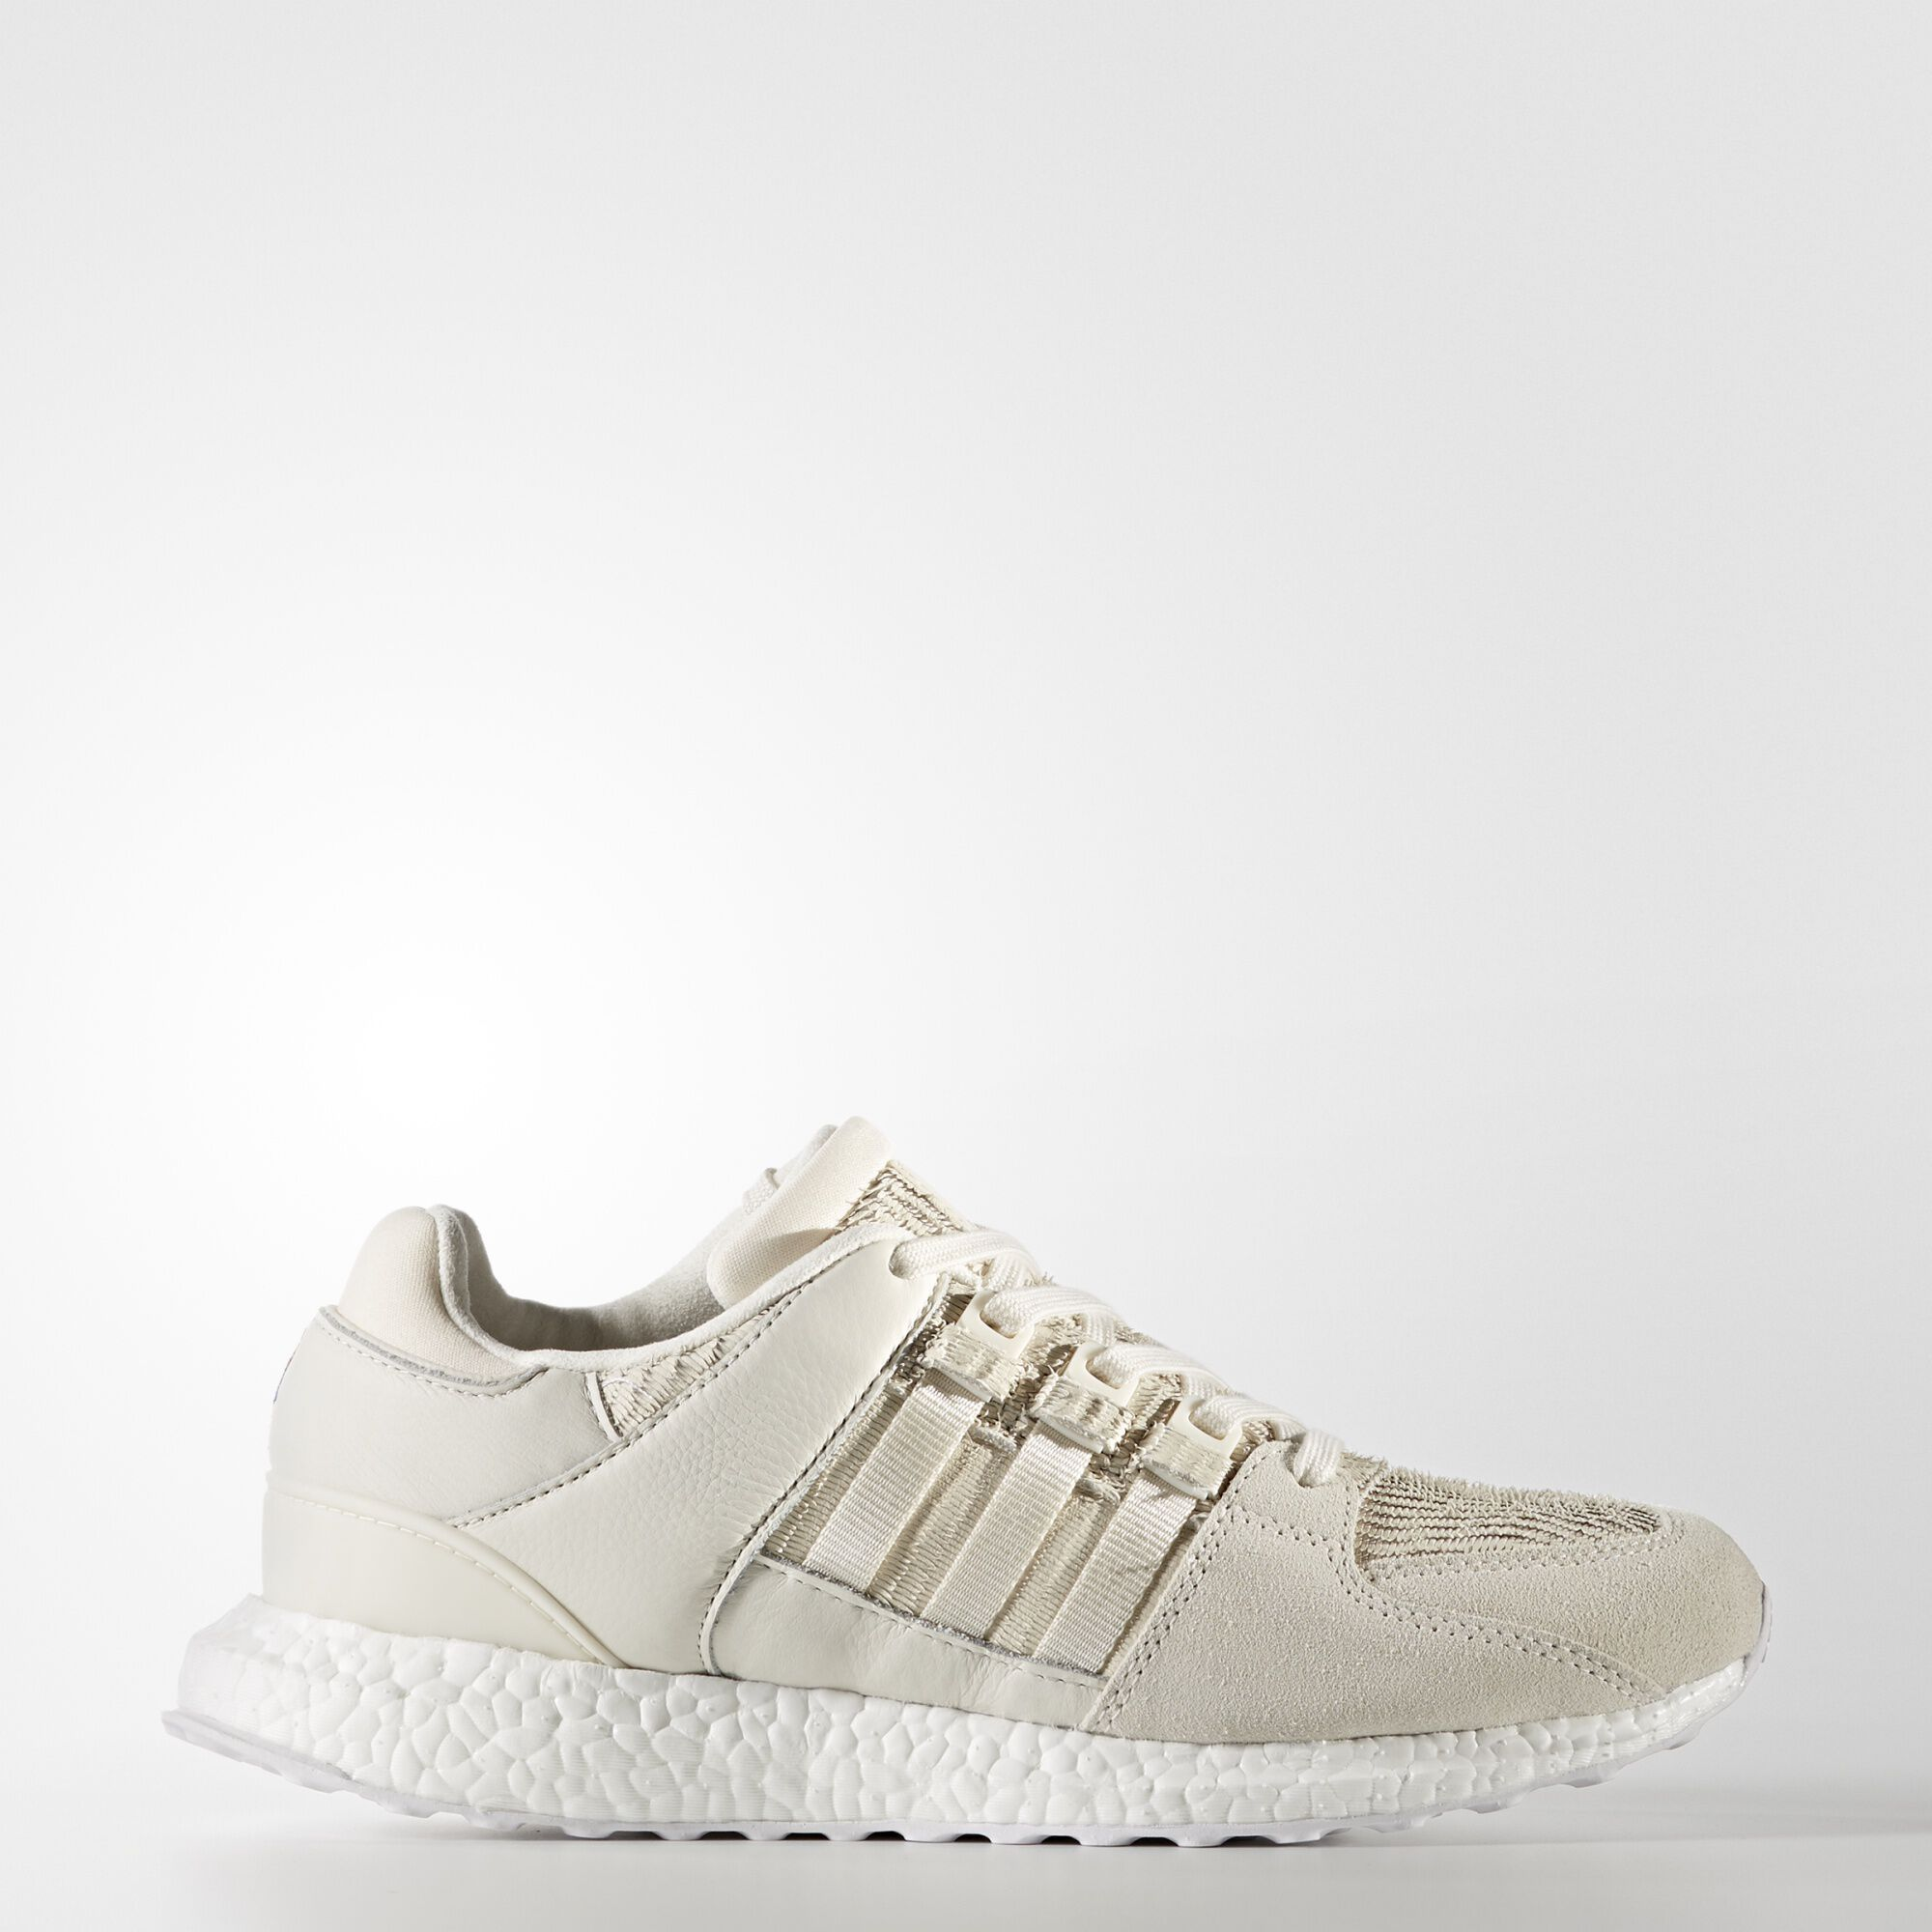 promo code aa42b 0b7df Adidas Original Equipment Support EQT ADV Triple White Men New